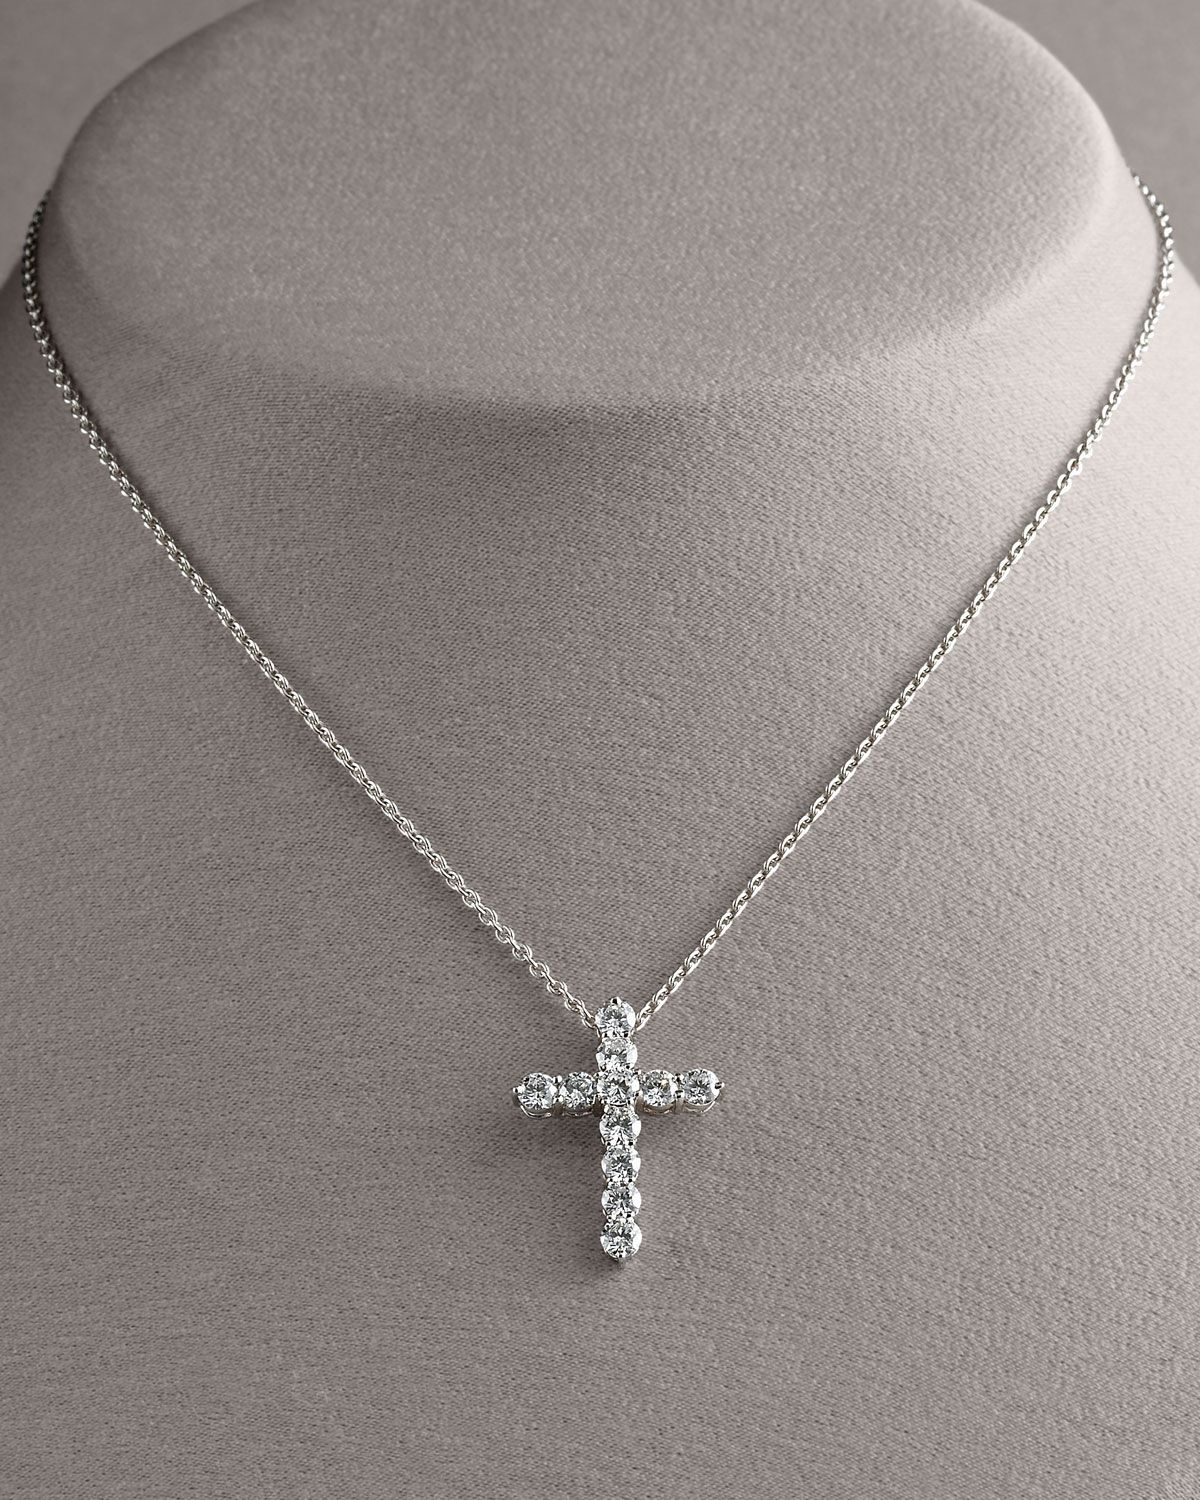 Httpharrisloveroberto coin diamond cross pendant necklace diamond roberto coin diamond cross pendant necklace large available at johnsons jewelers olde raleigh mozeypictures Choice Image